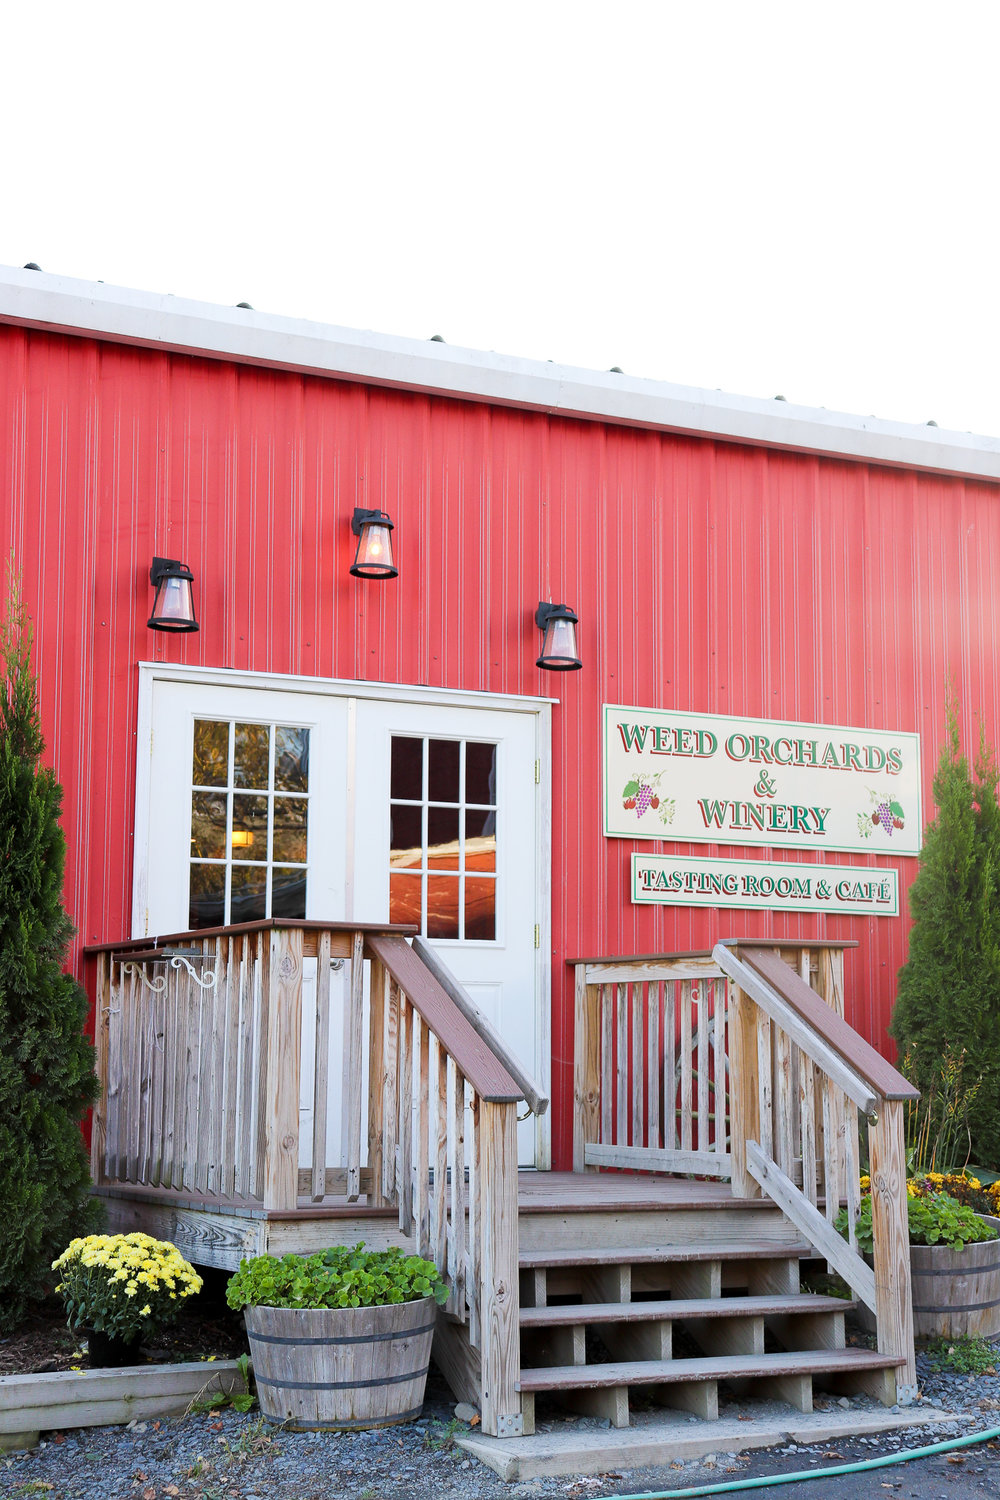 Weeds Winery and Orchard -18.jpg